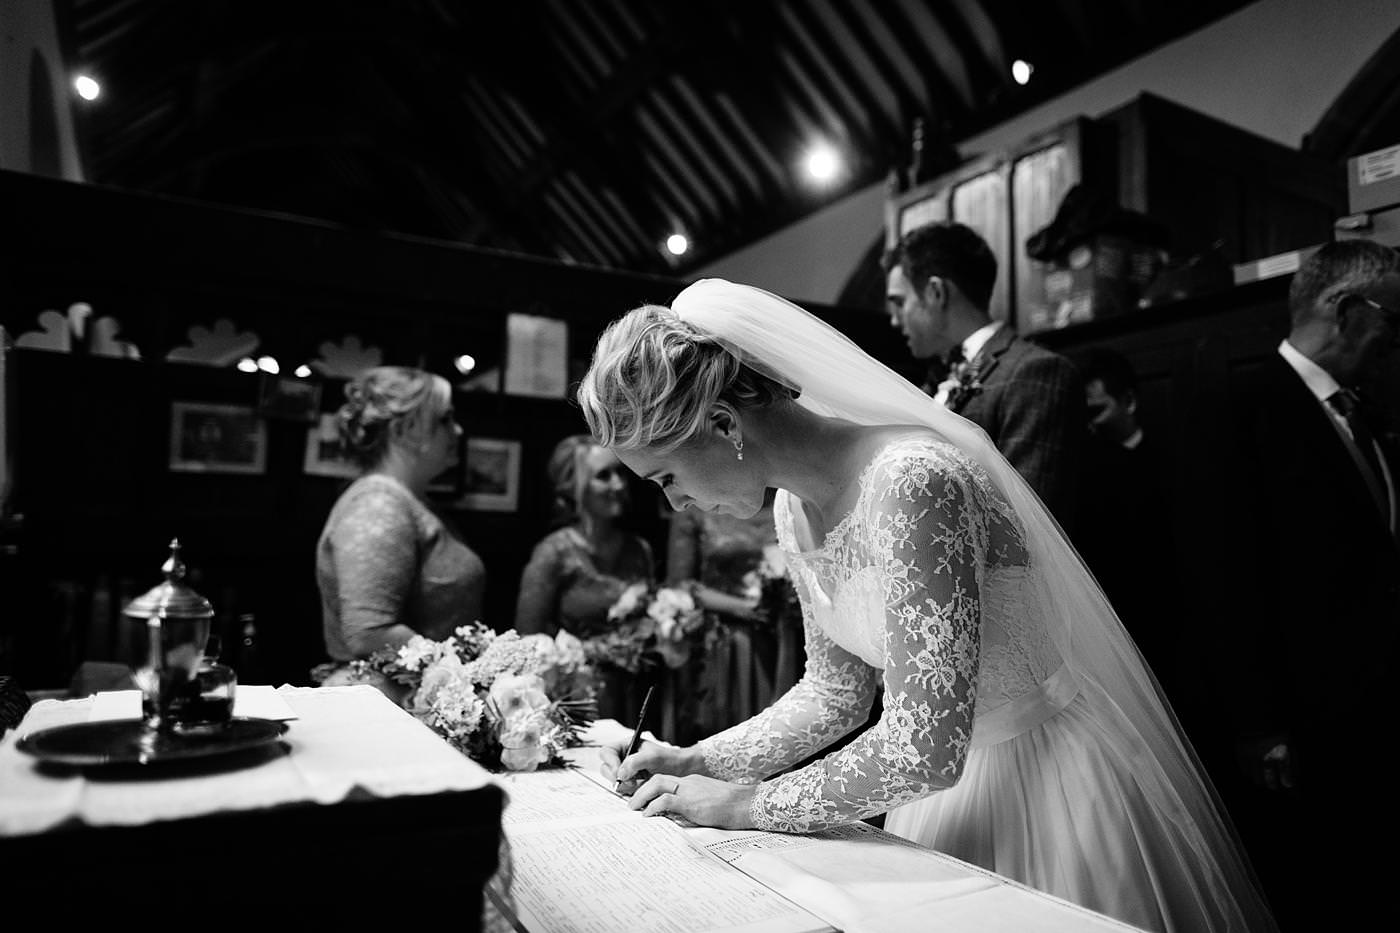 the signing of the register taken by North Wales Wedding Photographer Phil Barrett